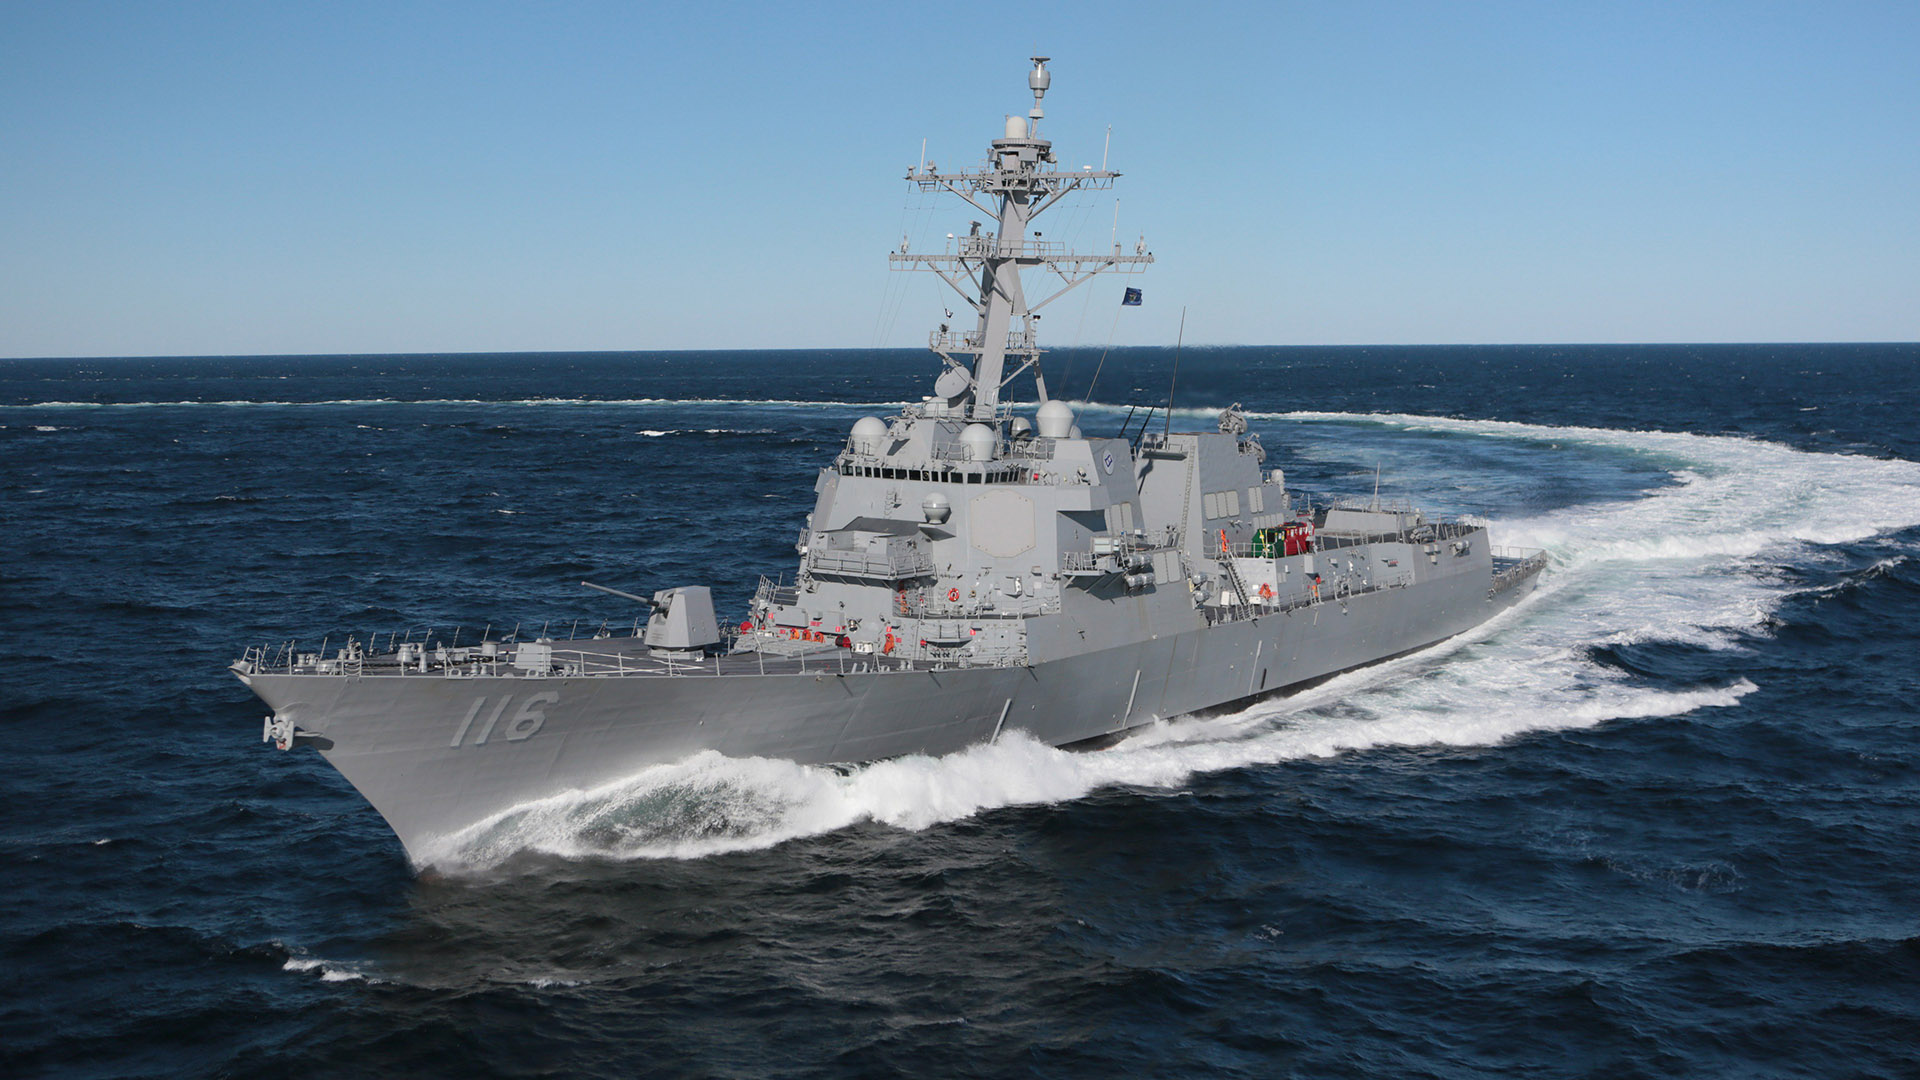 Guided-missile destroyer USS Thomas Hudner departs Black Sea